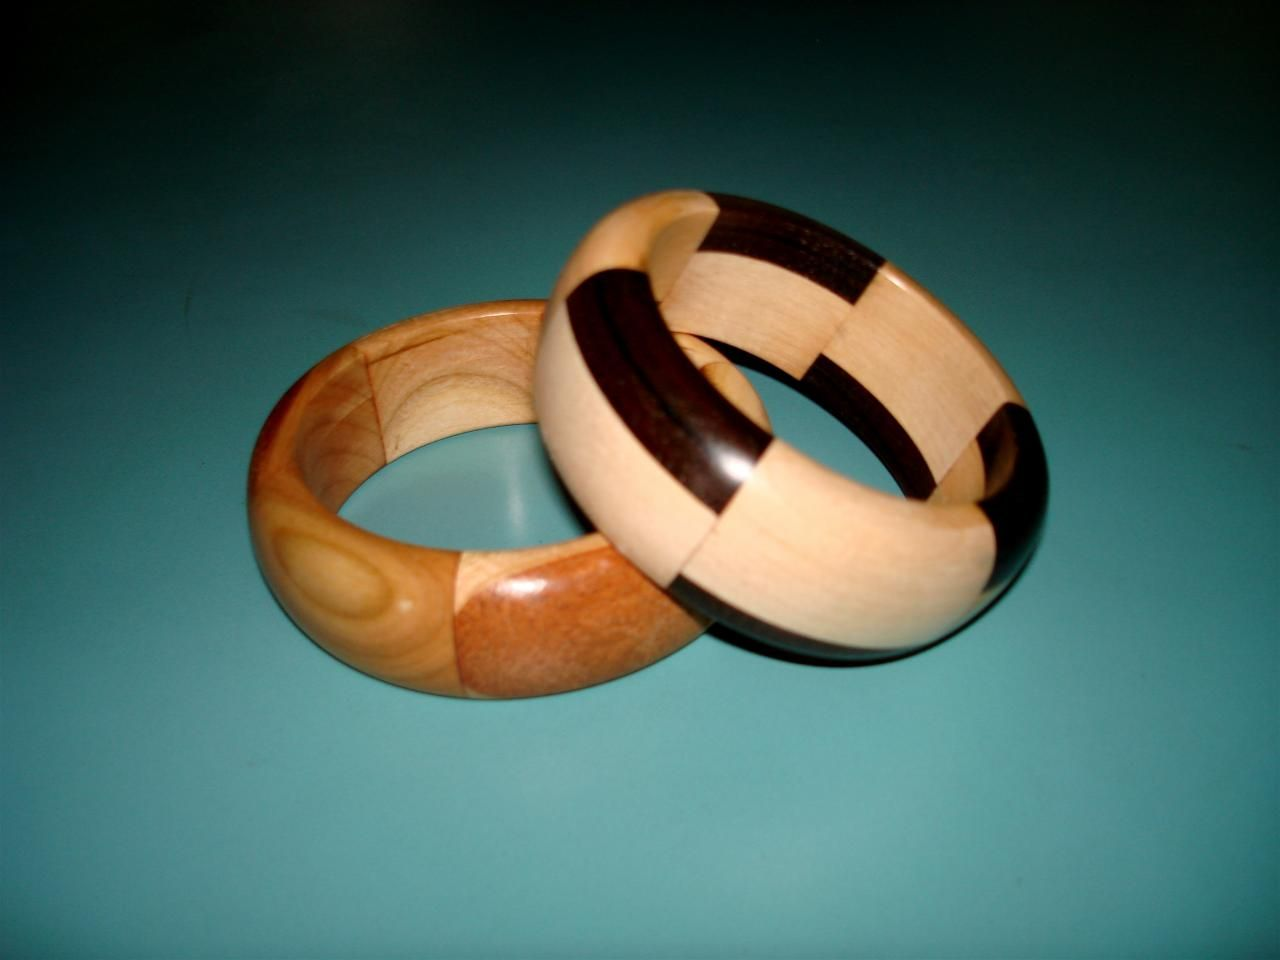 mattscaptiverodring captive rings make experiment ring featured image article lathe